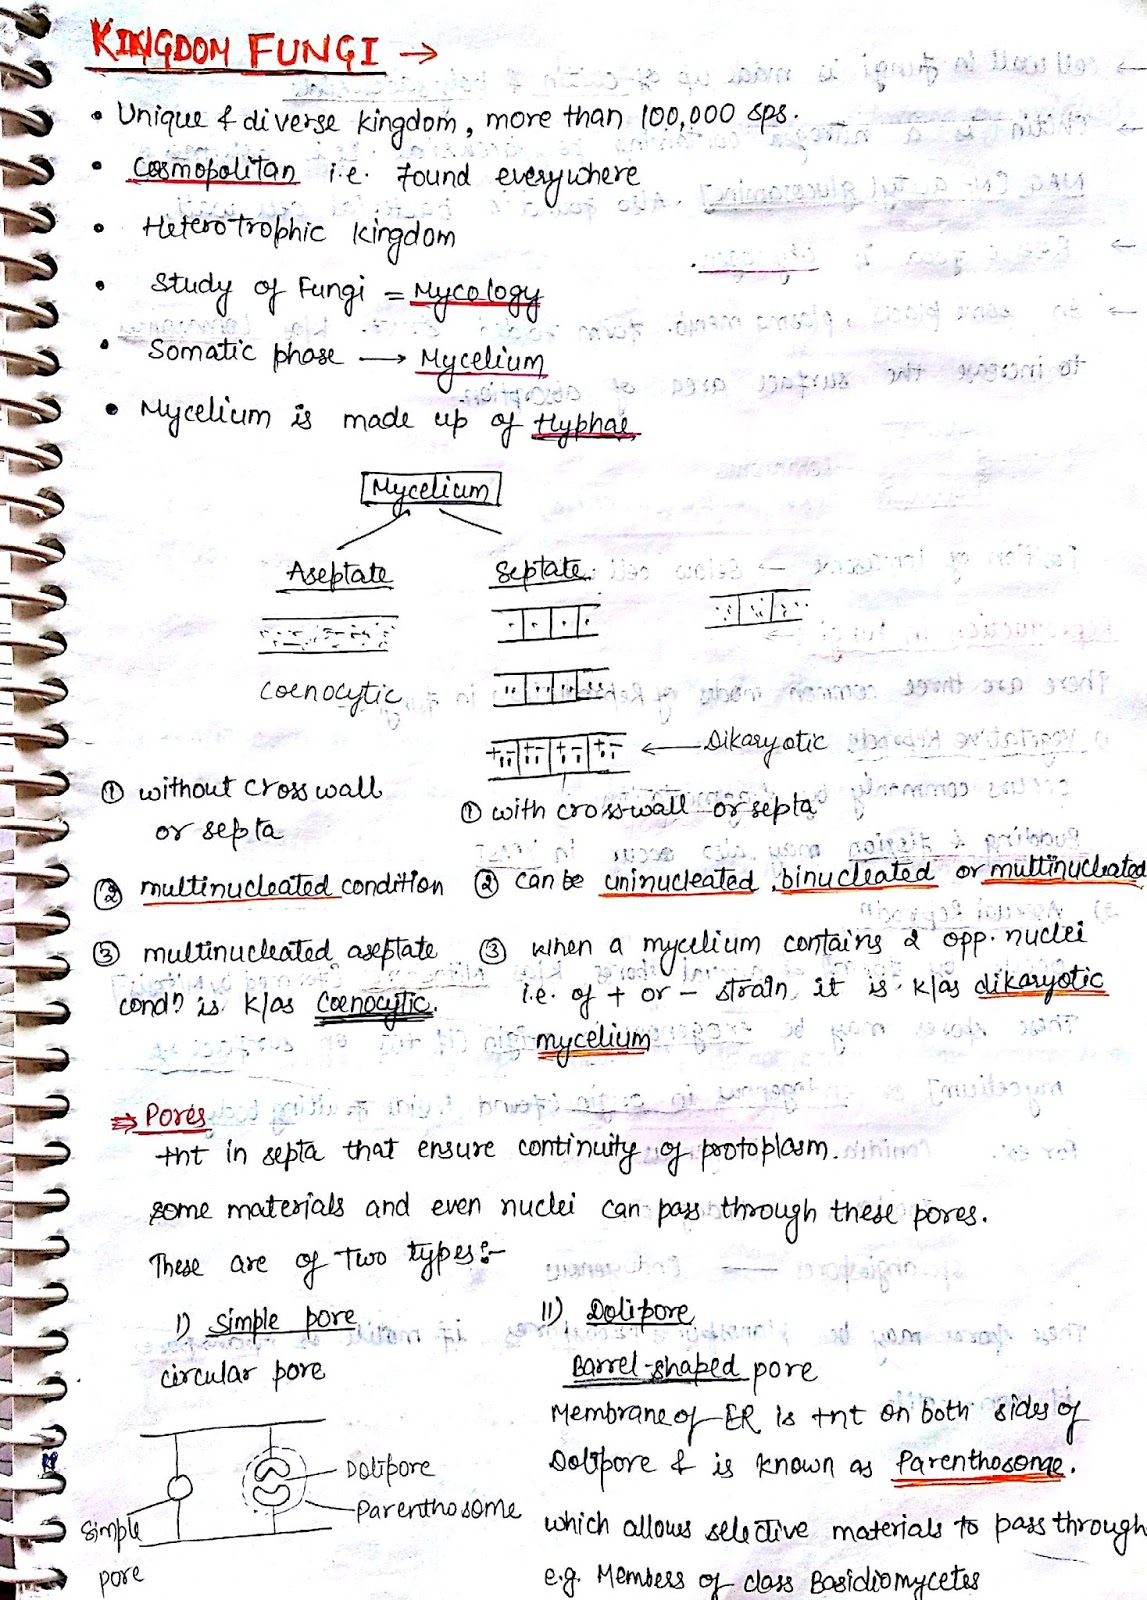 Neet aiims 2018 kingdom fungi notes biology geenschuldenfo Choice Image